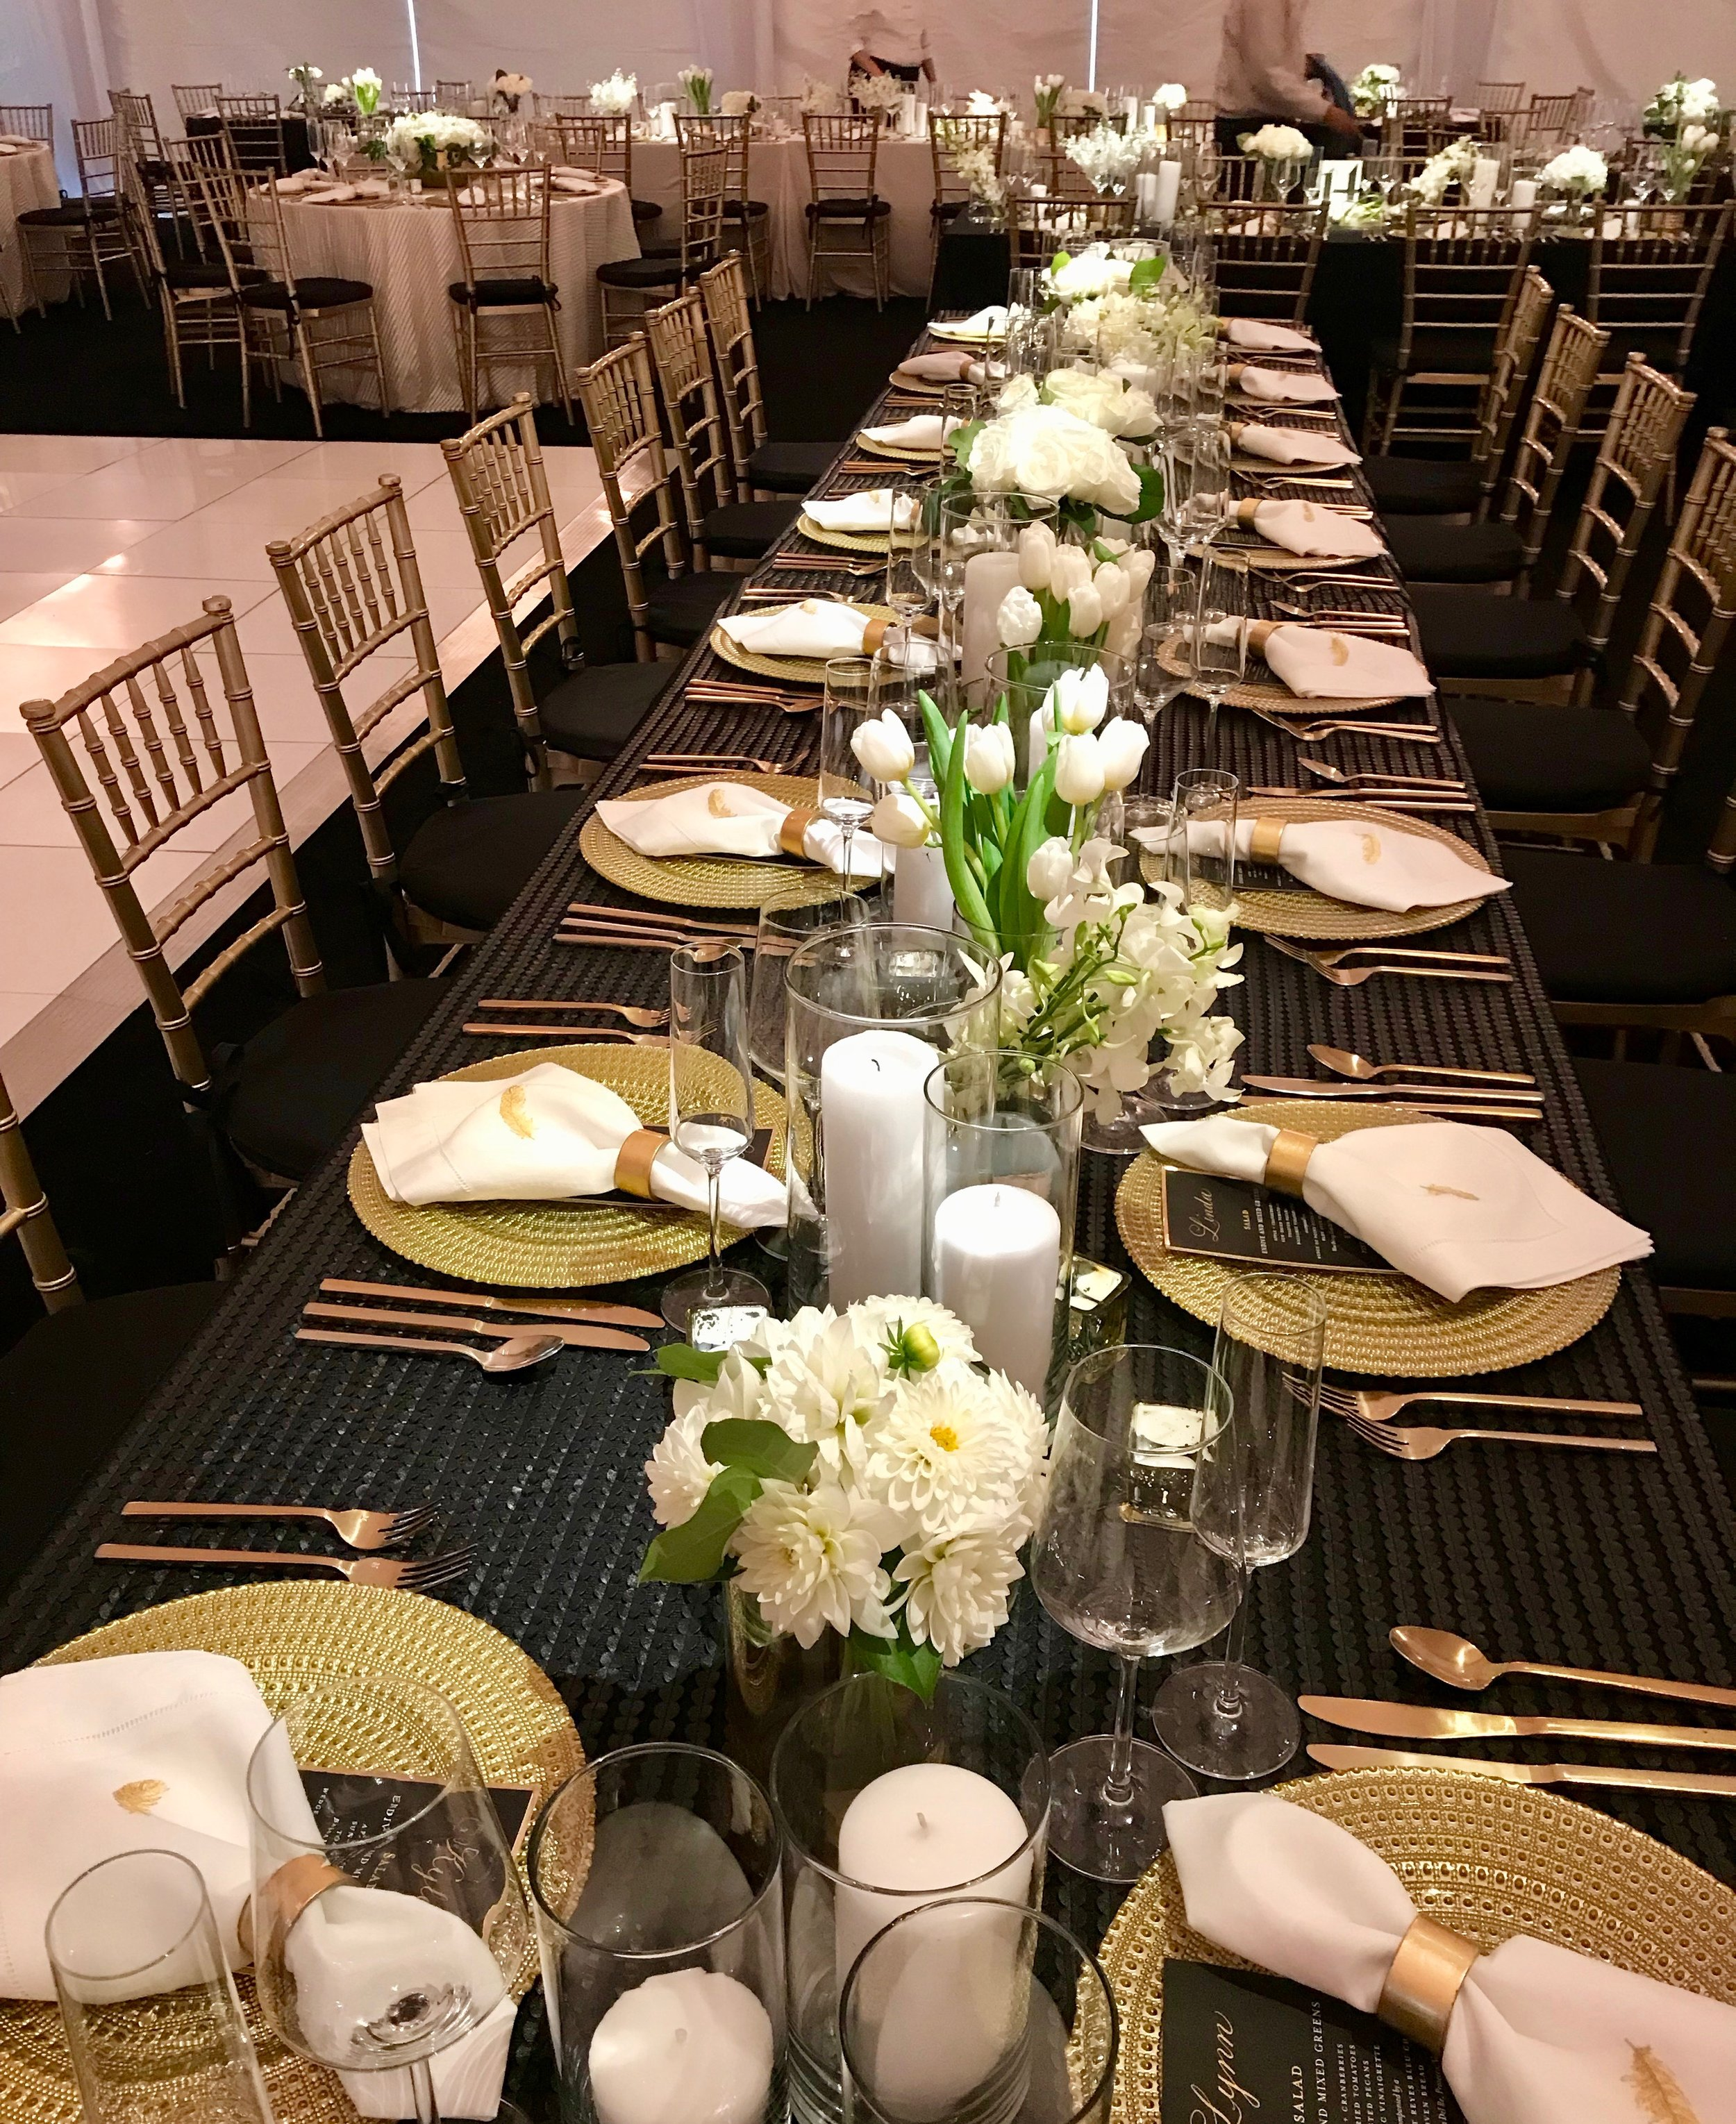 White tulips and dahlias for family style table